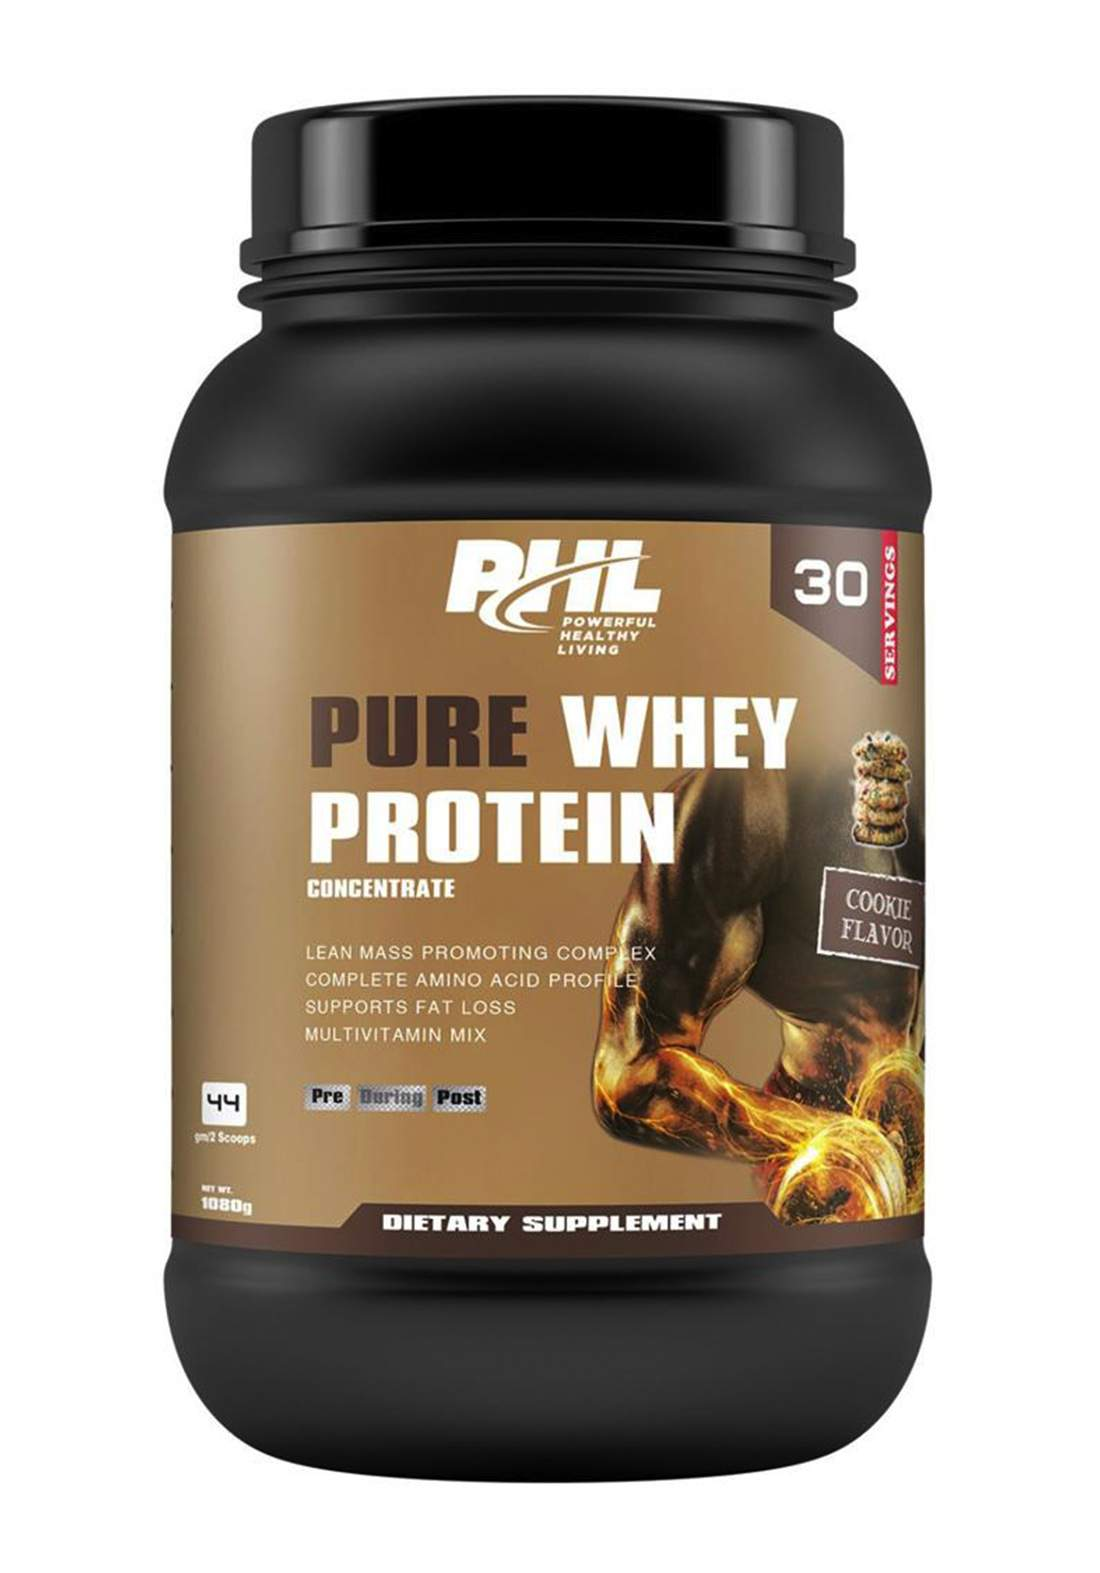 Phl Pure Whey Protein Cookie  30 Servings 1080 g بروتين مكمل غذائي